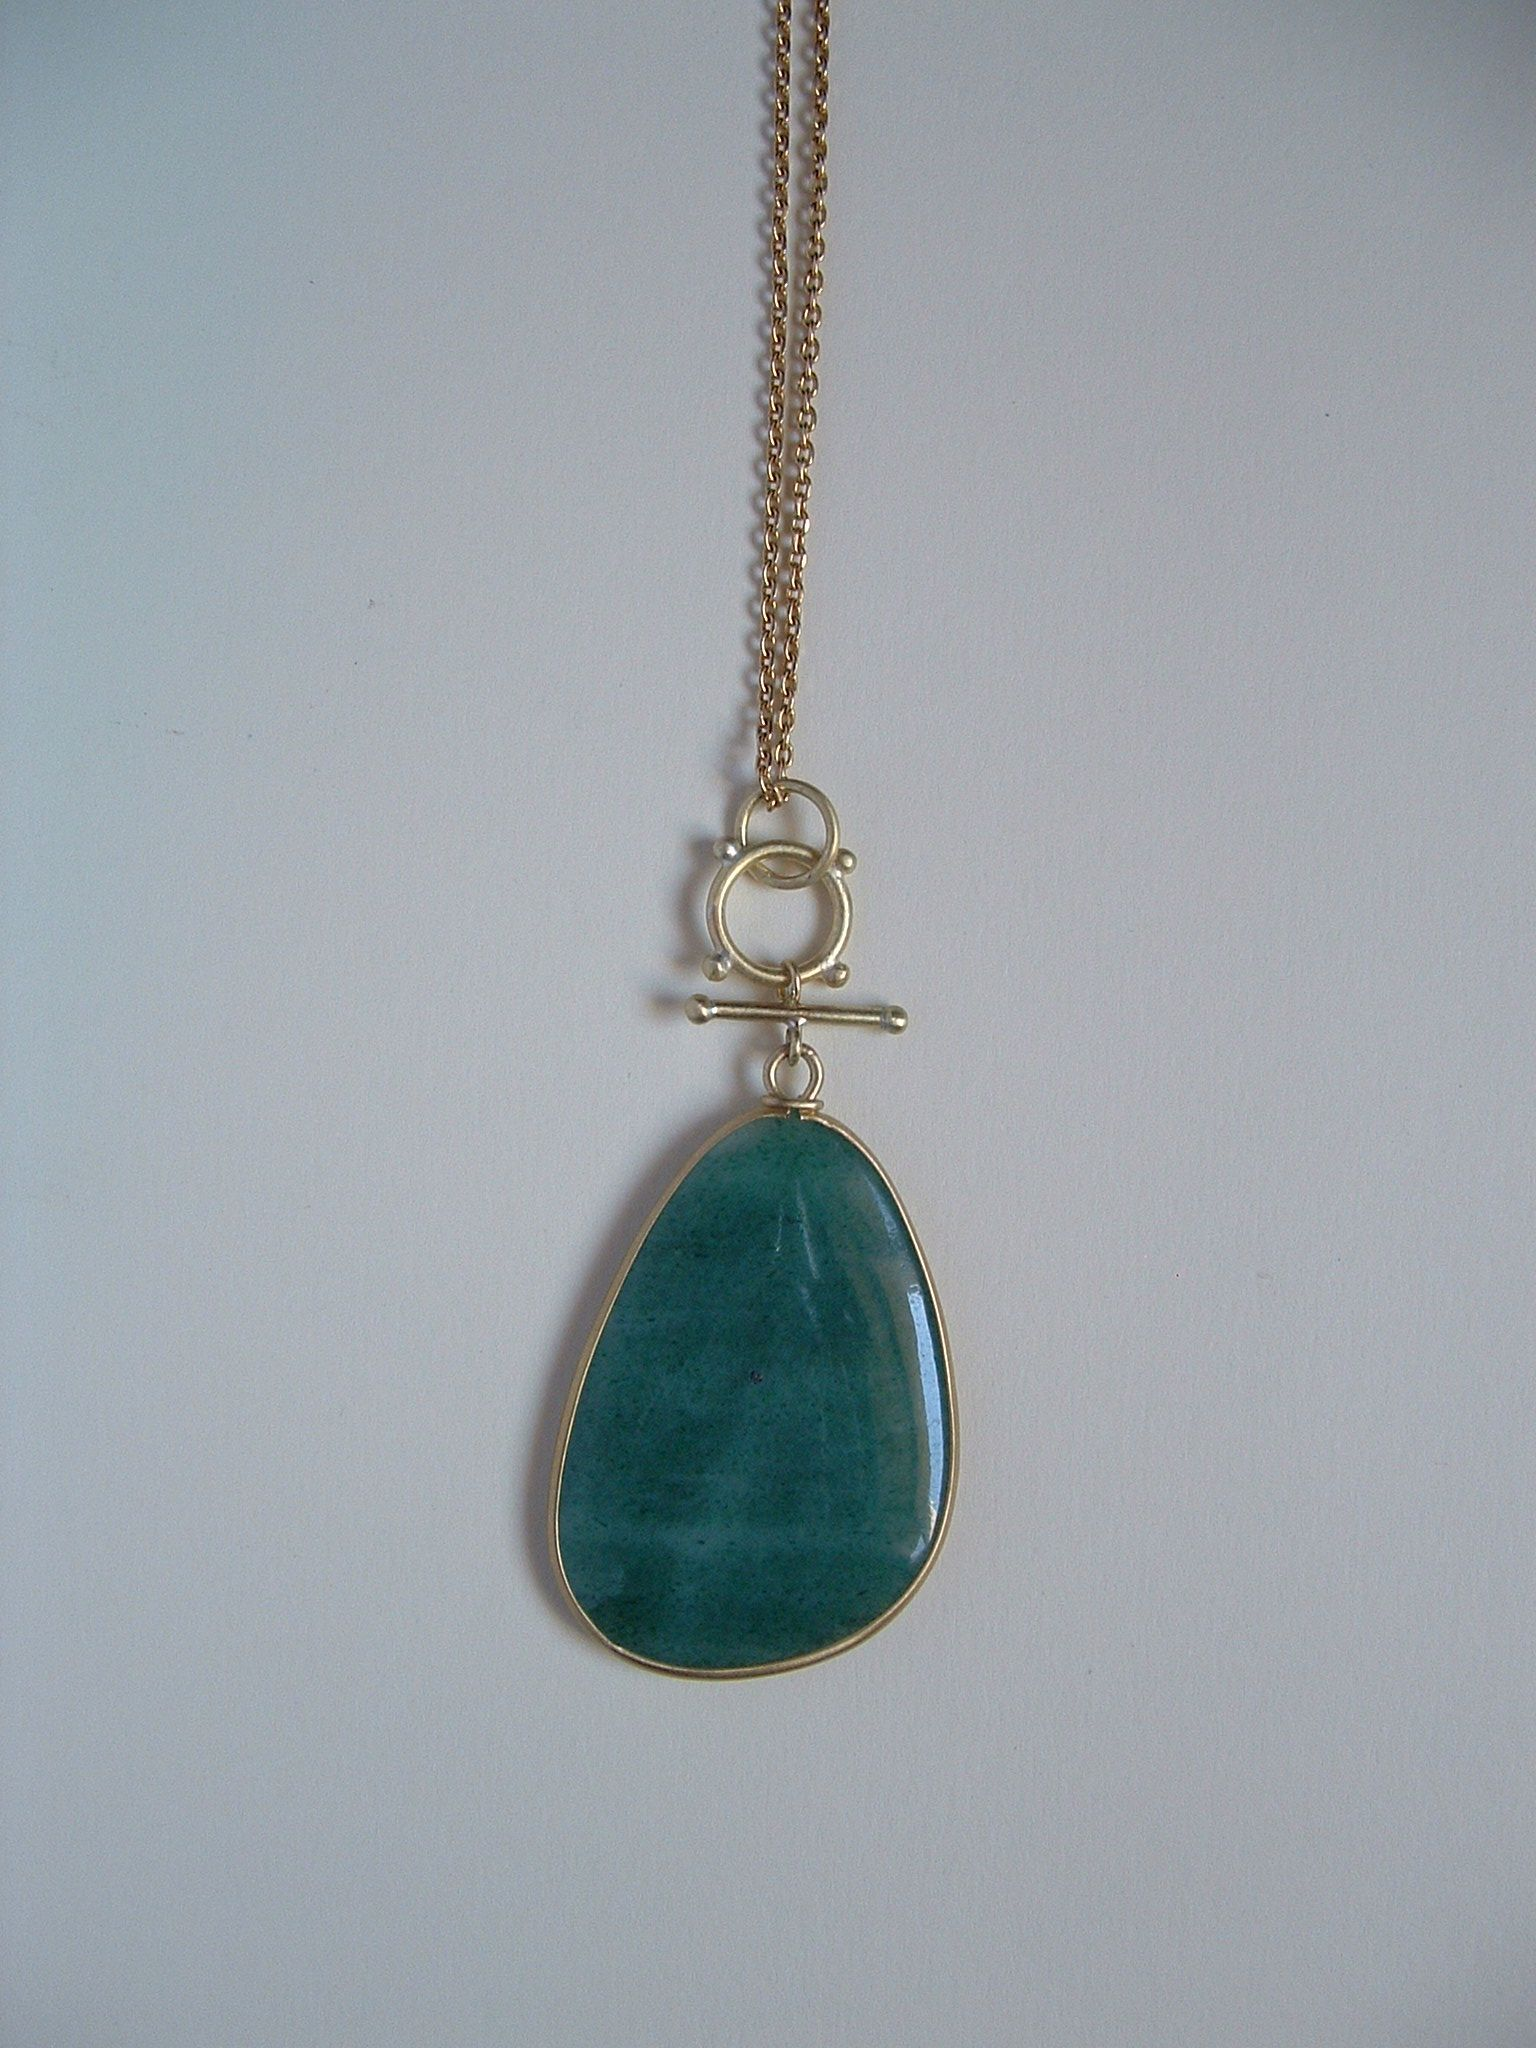 green aventurine, gold necklace. pepa bonnin